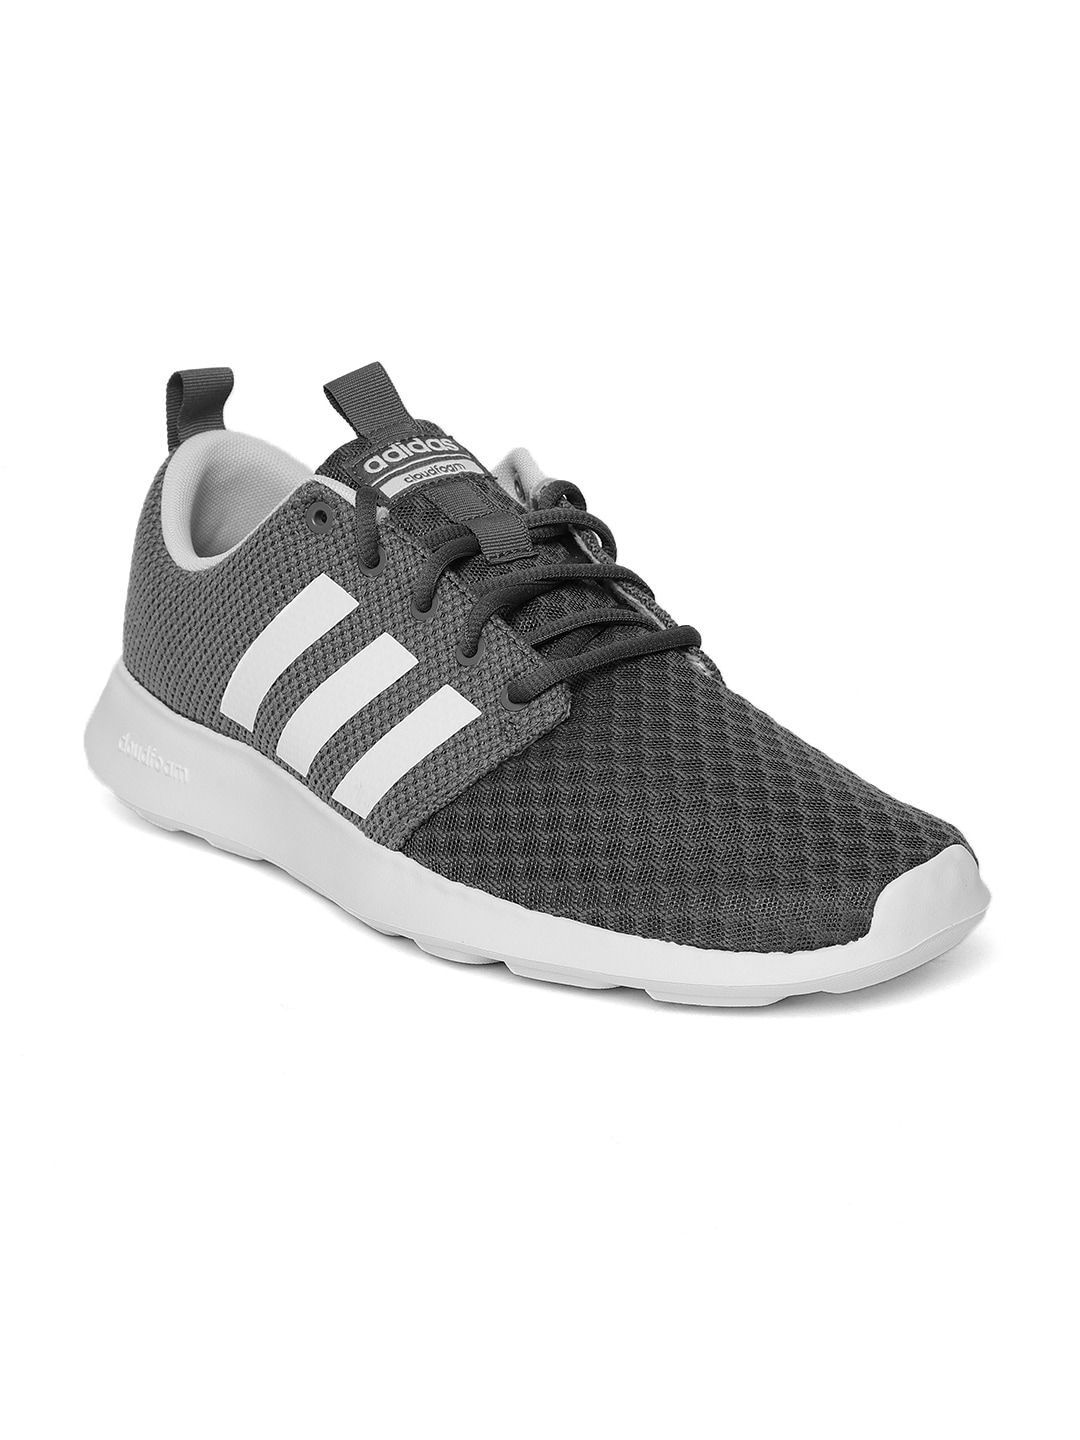 635705e49f99 Adidas Racer - Buy Adidas Racer online in India